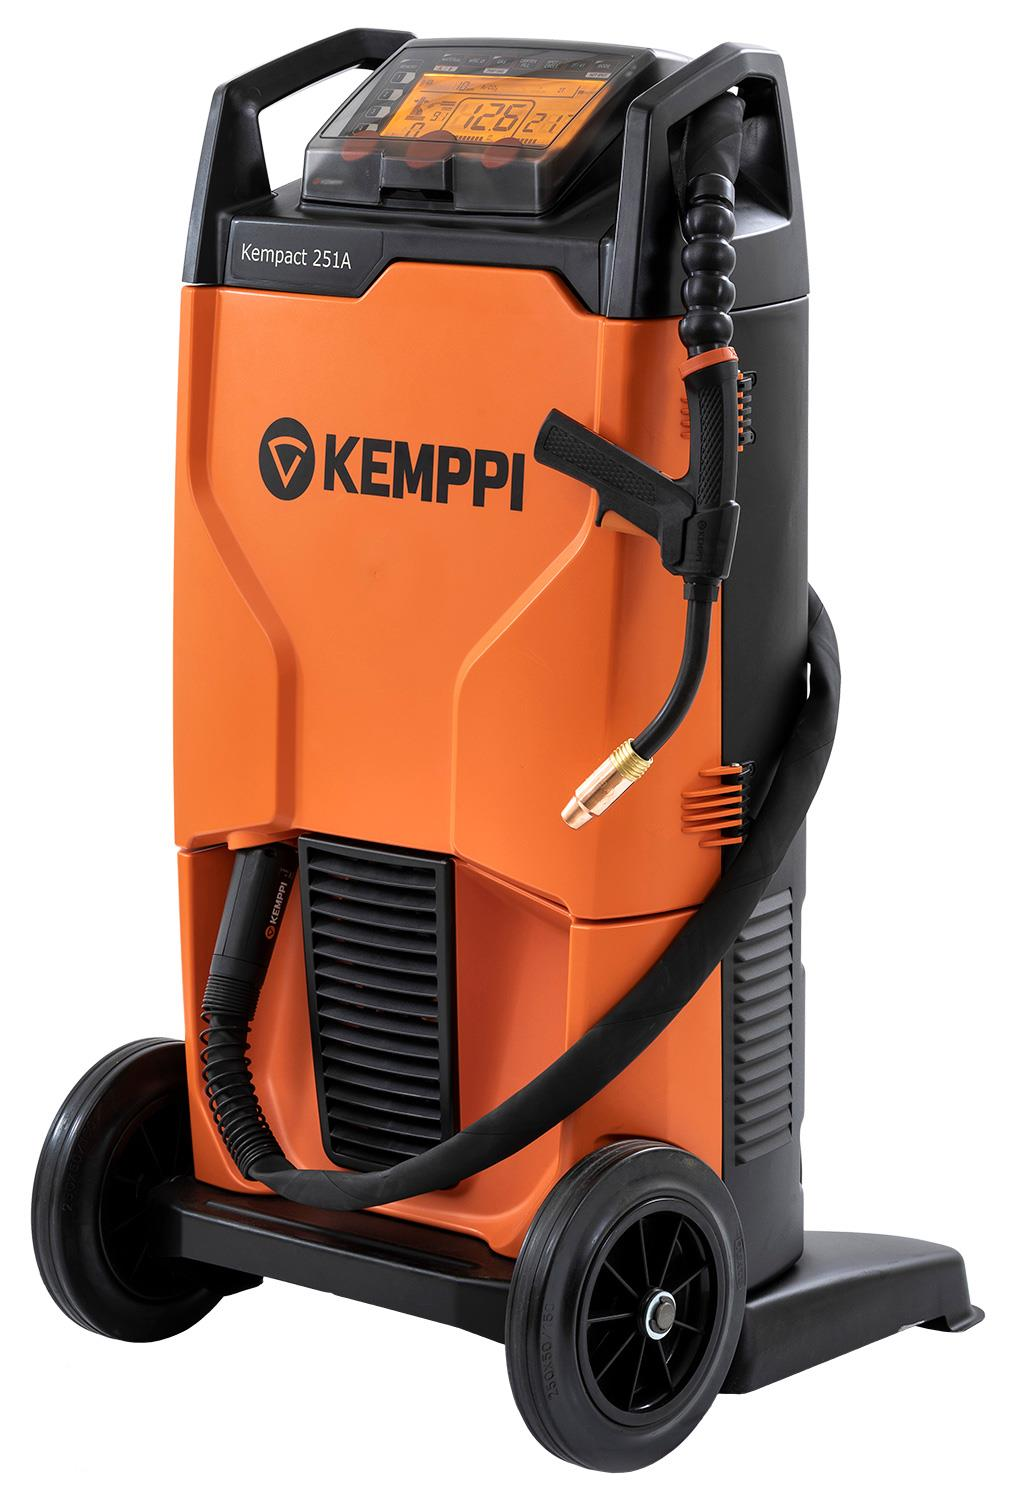 KempactRA-251A  Kemppi Kempact RA 251A, 250A 230v Mig Welder, with FE25 Torch